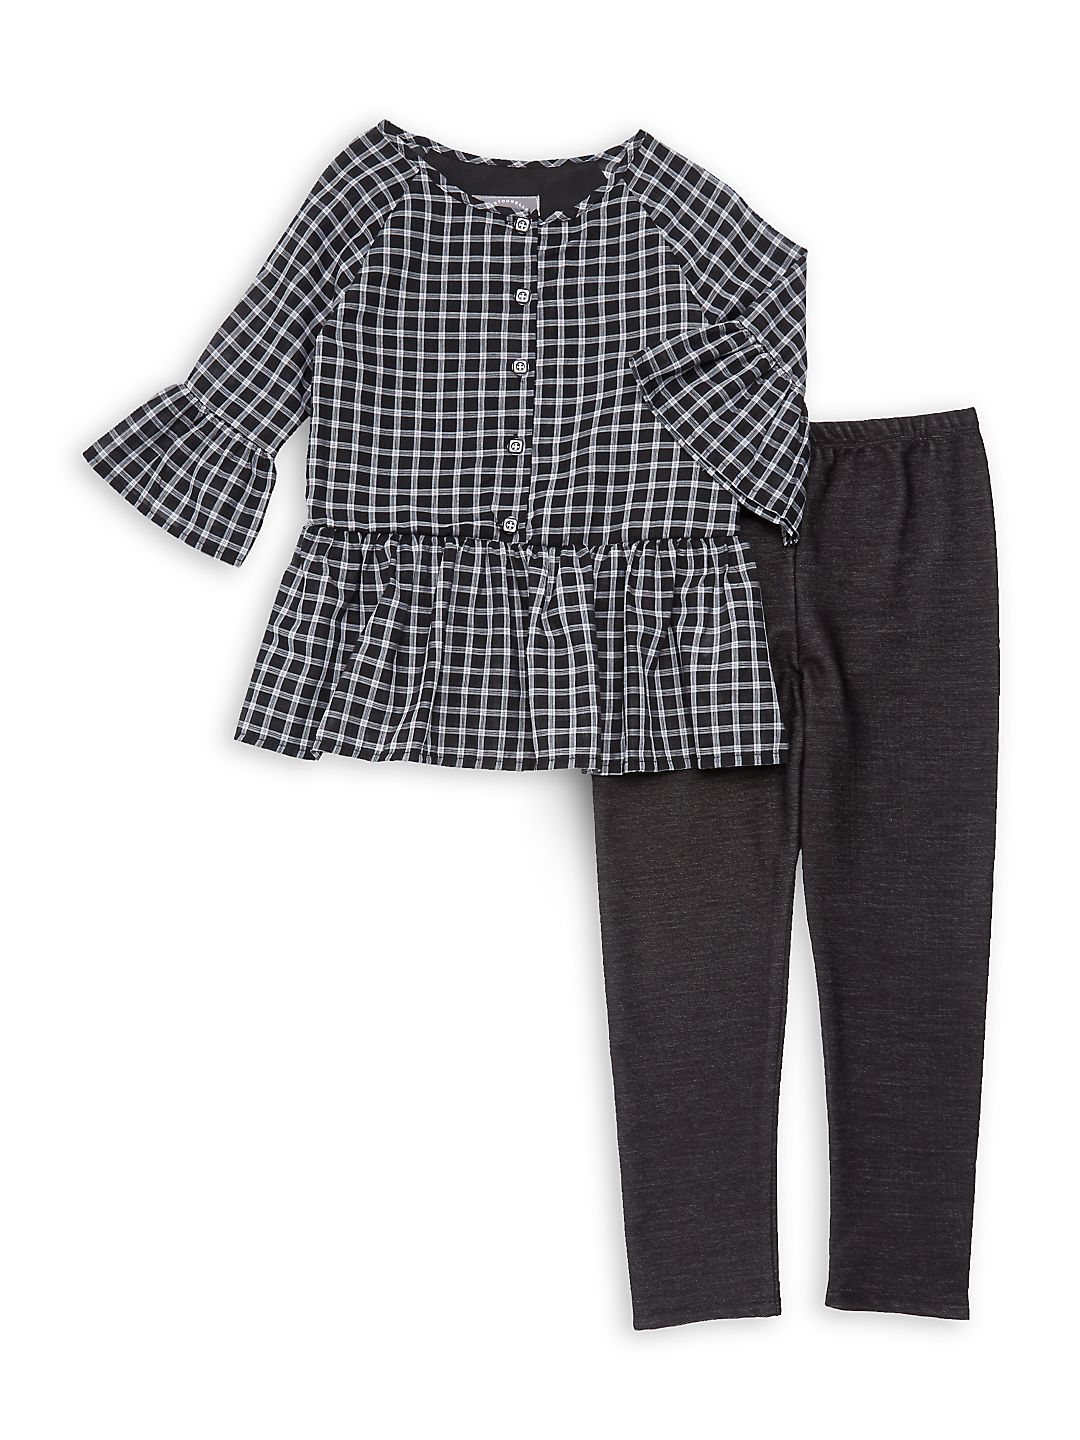 Little Girl's Two-Piece Checkered Top & Pants Set